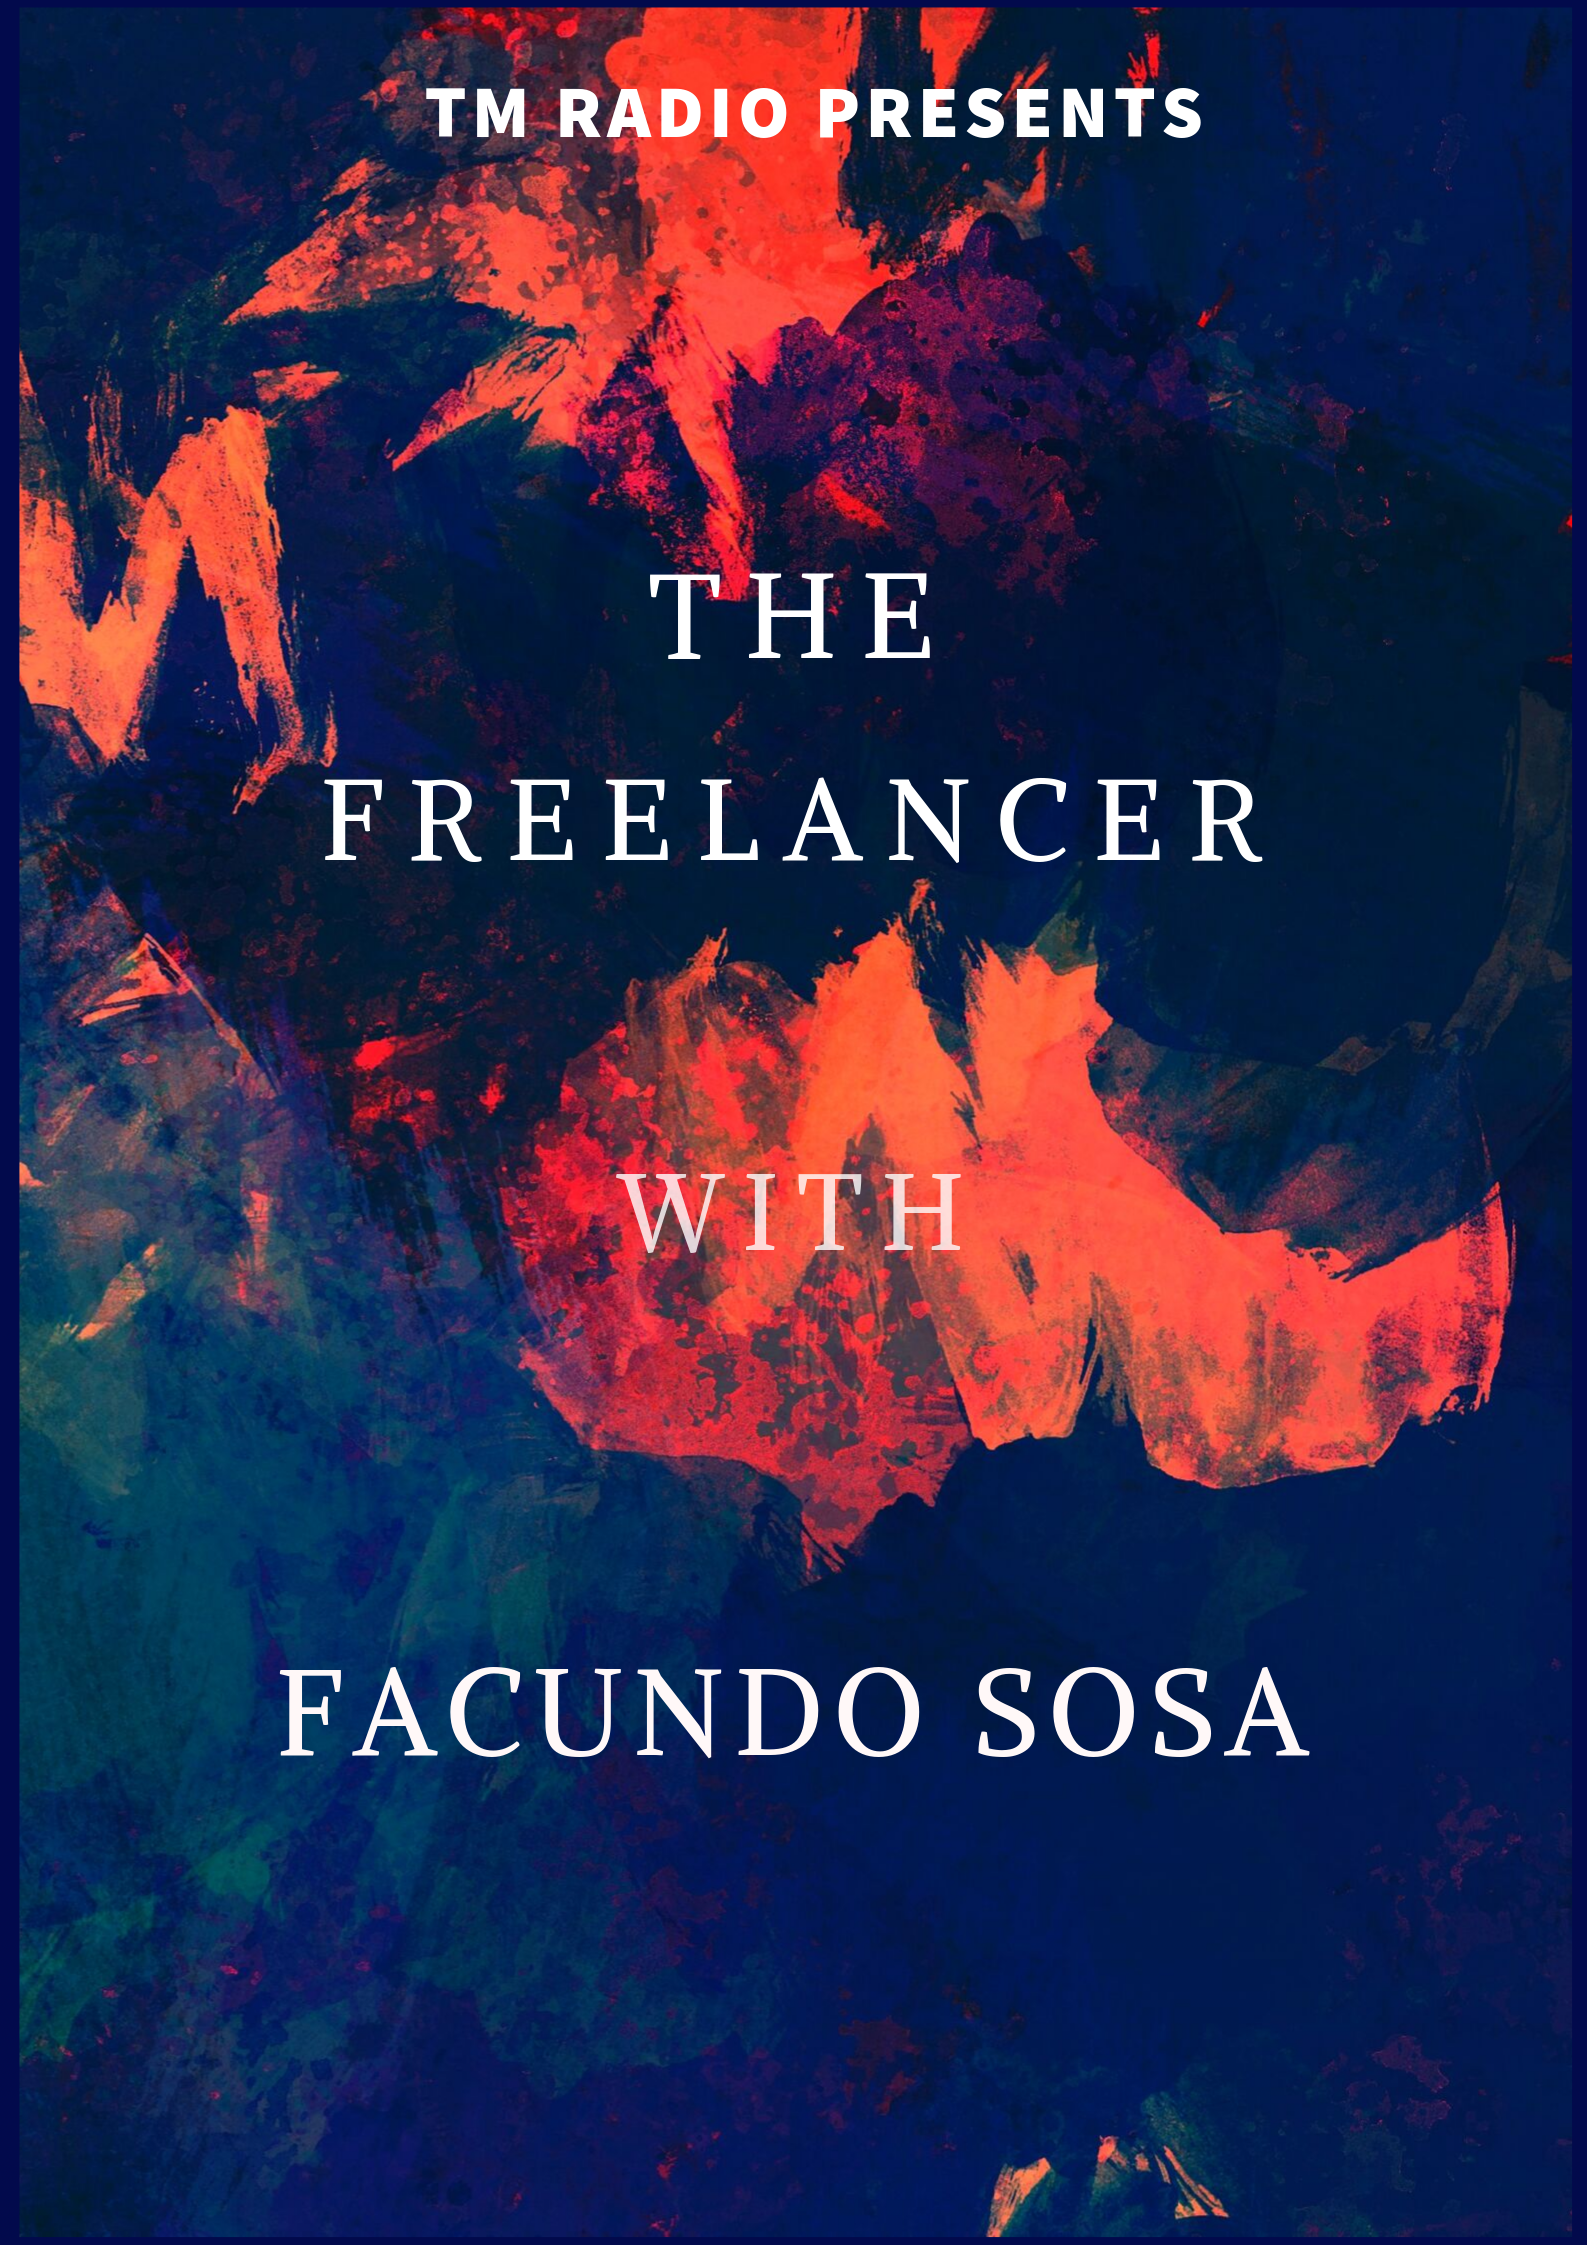 The Freelancer :: Episode 024 (aired on August 29th) banner logo